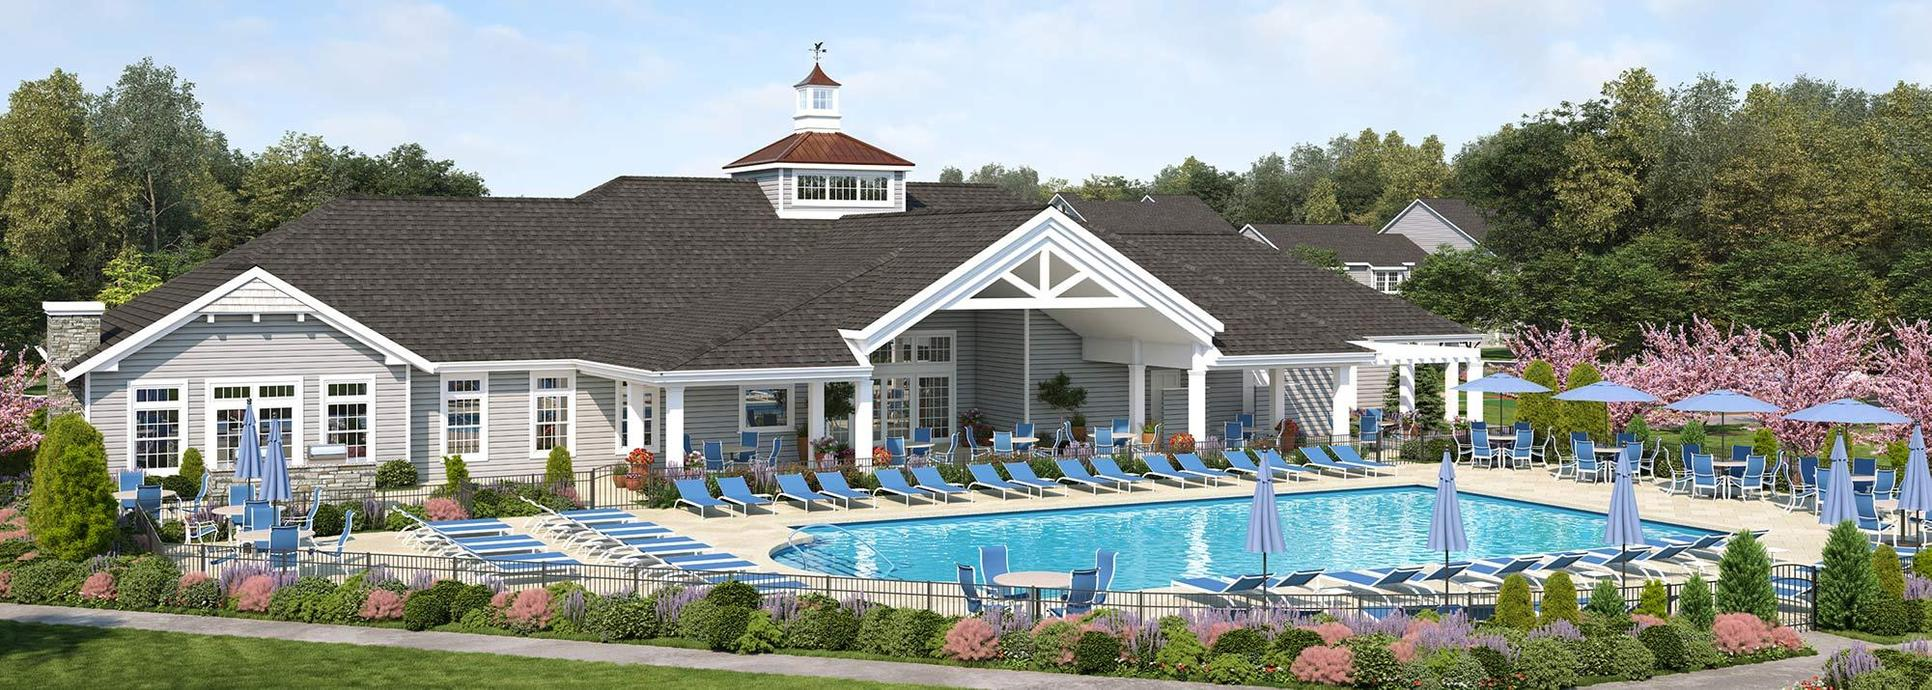 Vineyards at Brookfield Center Moriches:Our spectacular 6,480 square foot Vineyards Club is the centerpiece of our community